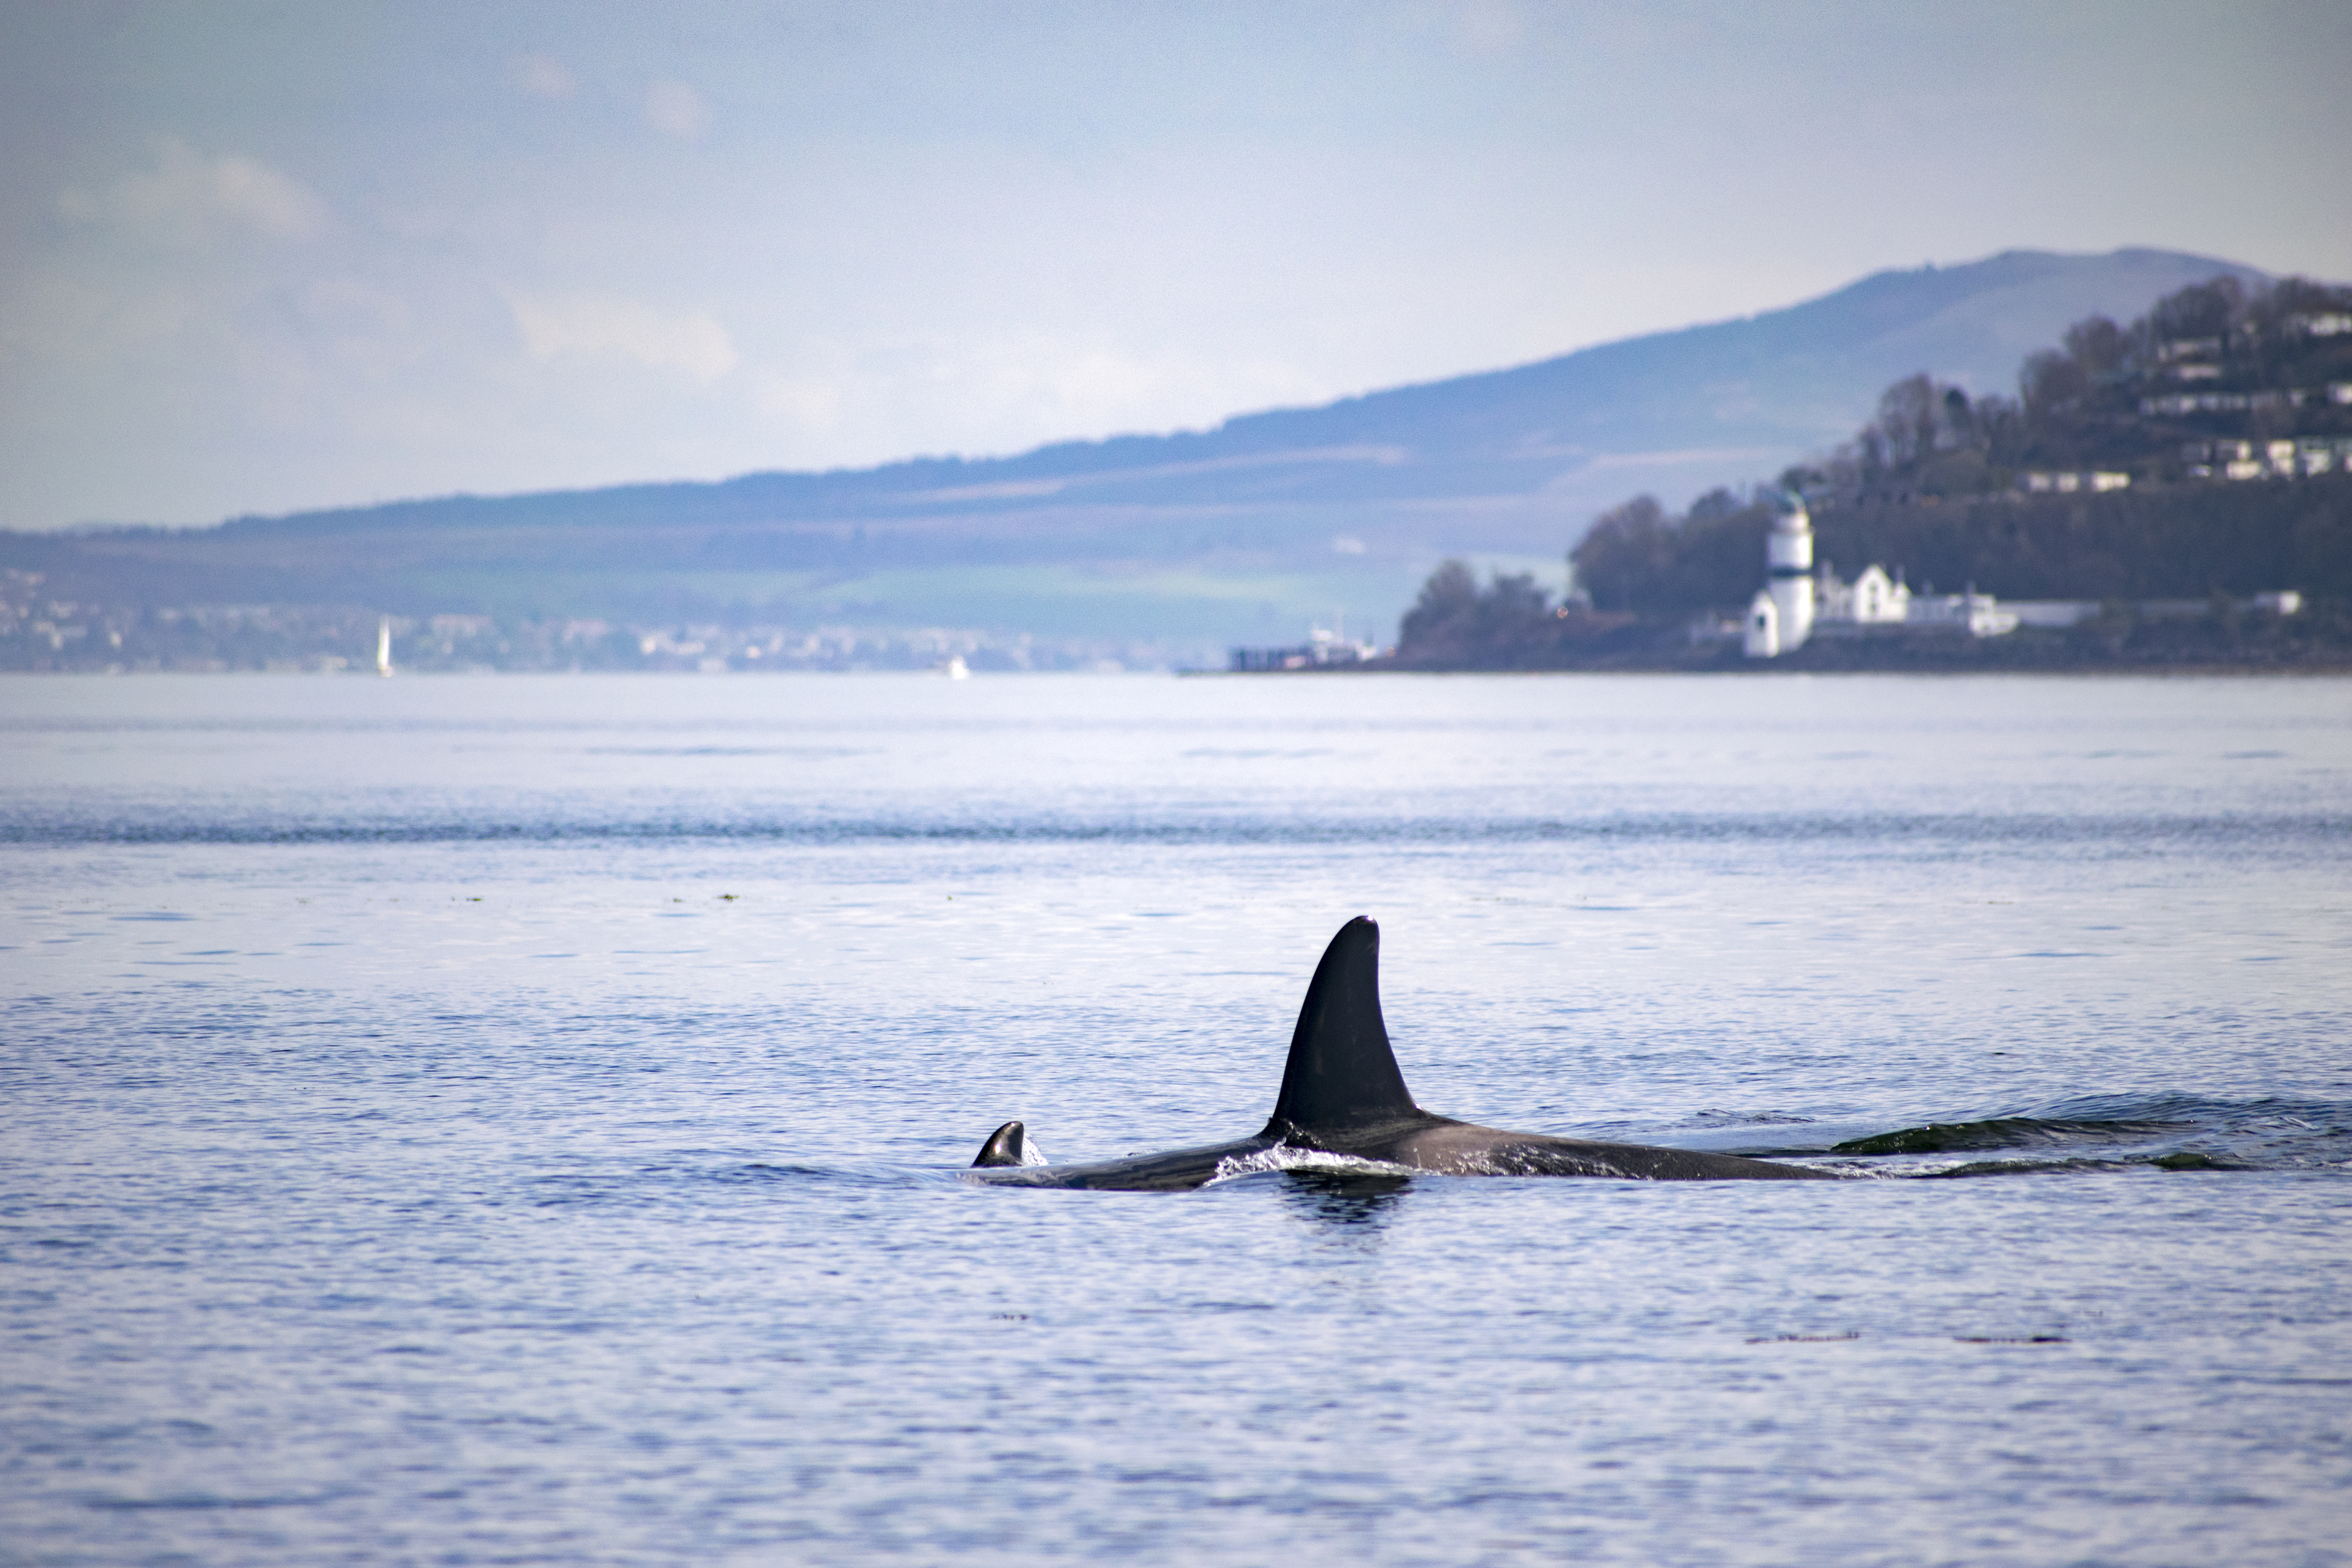 An orca whale on the Clyde earlier this year (Grant Gillon)